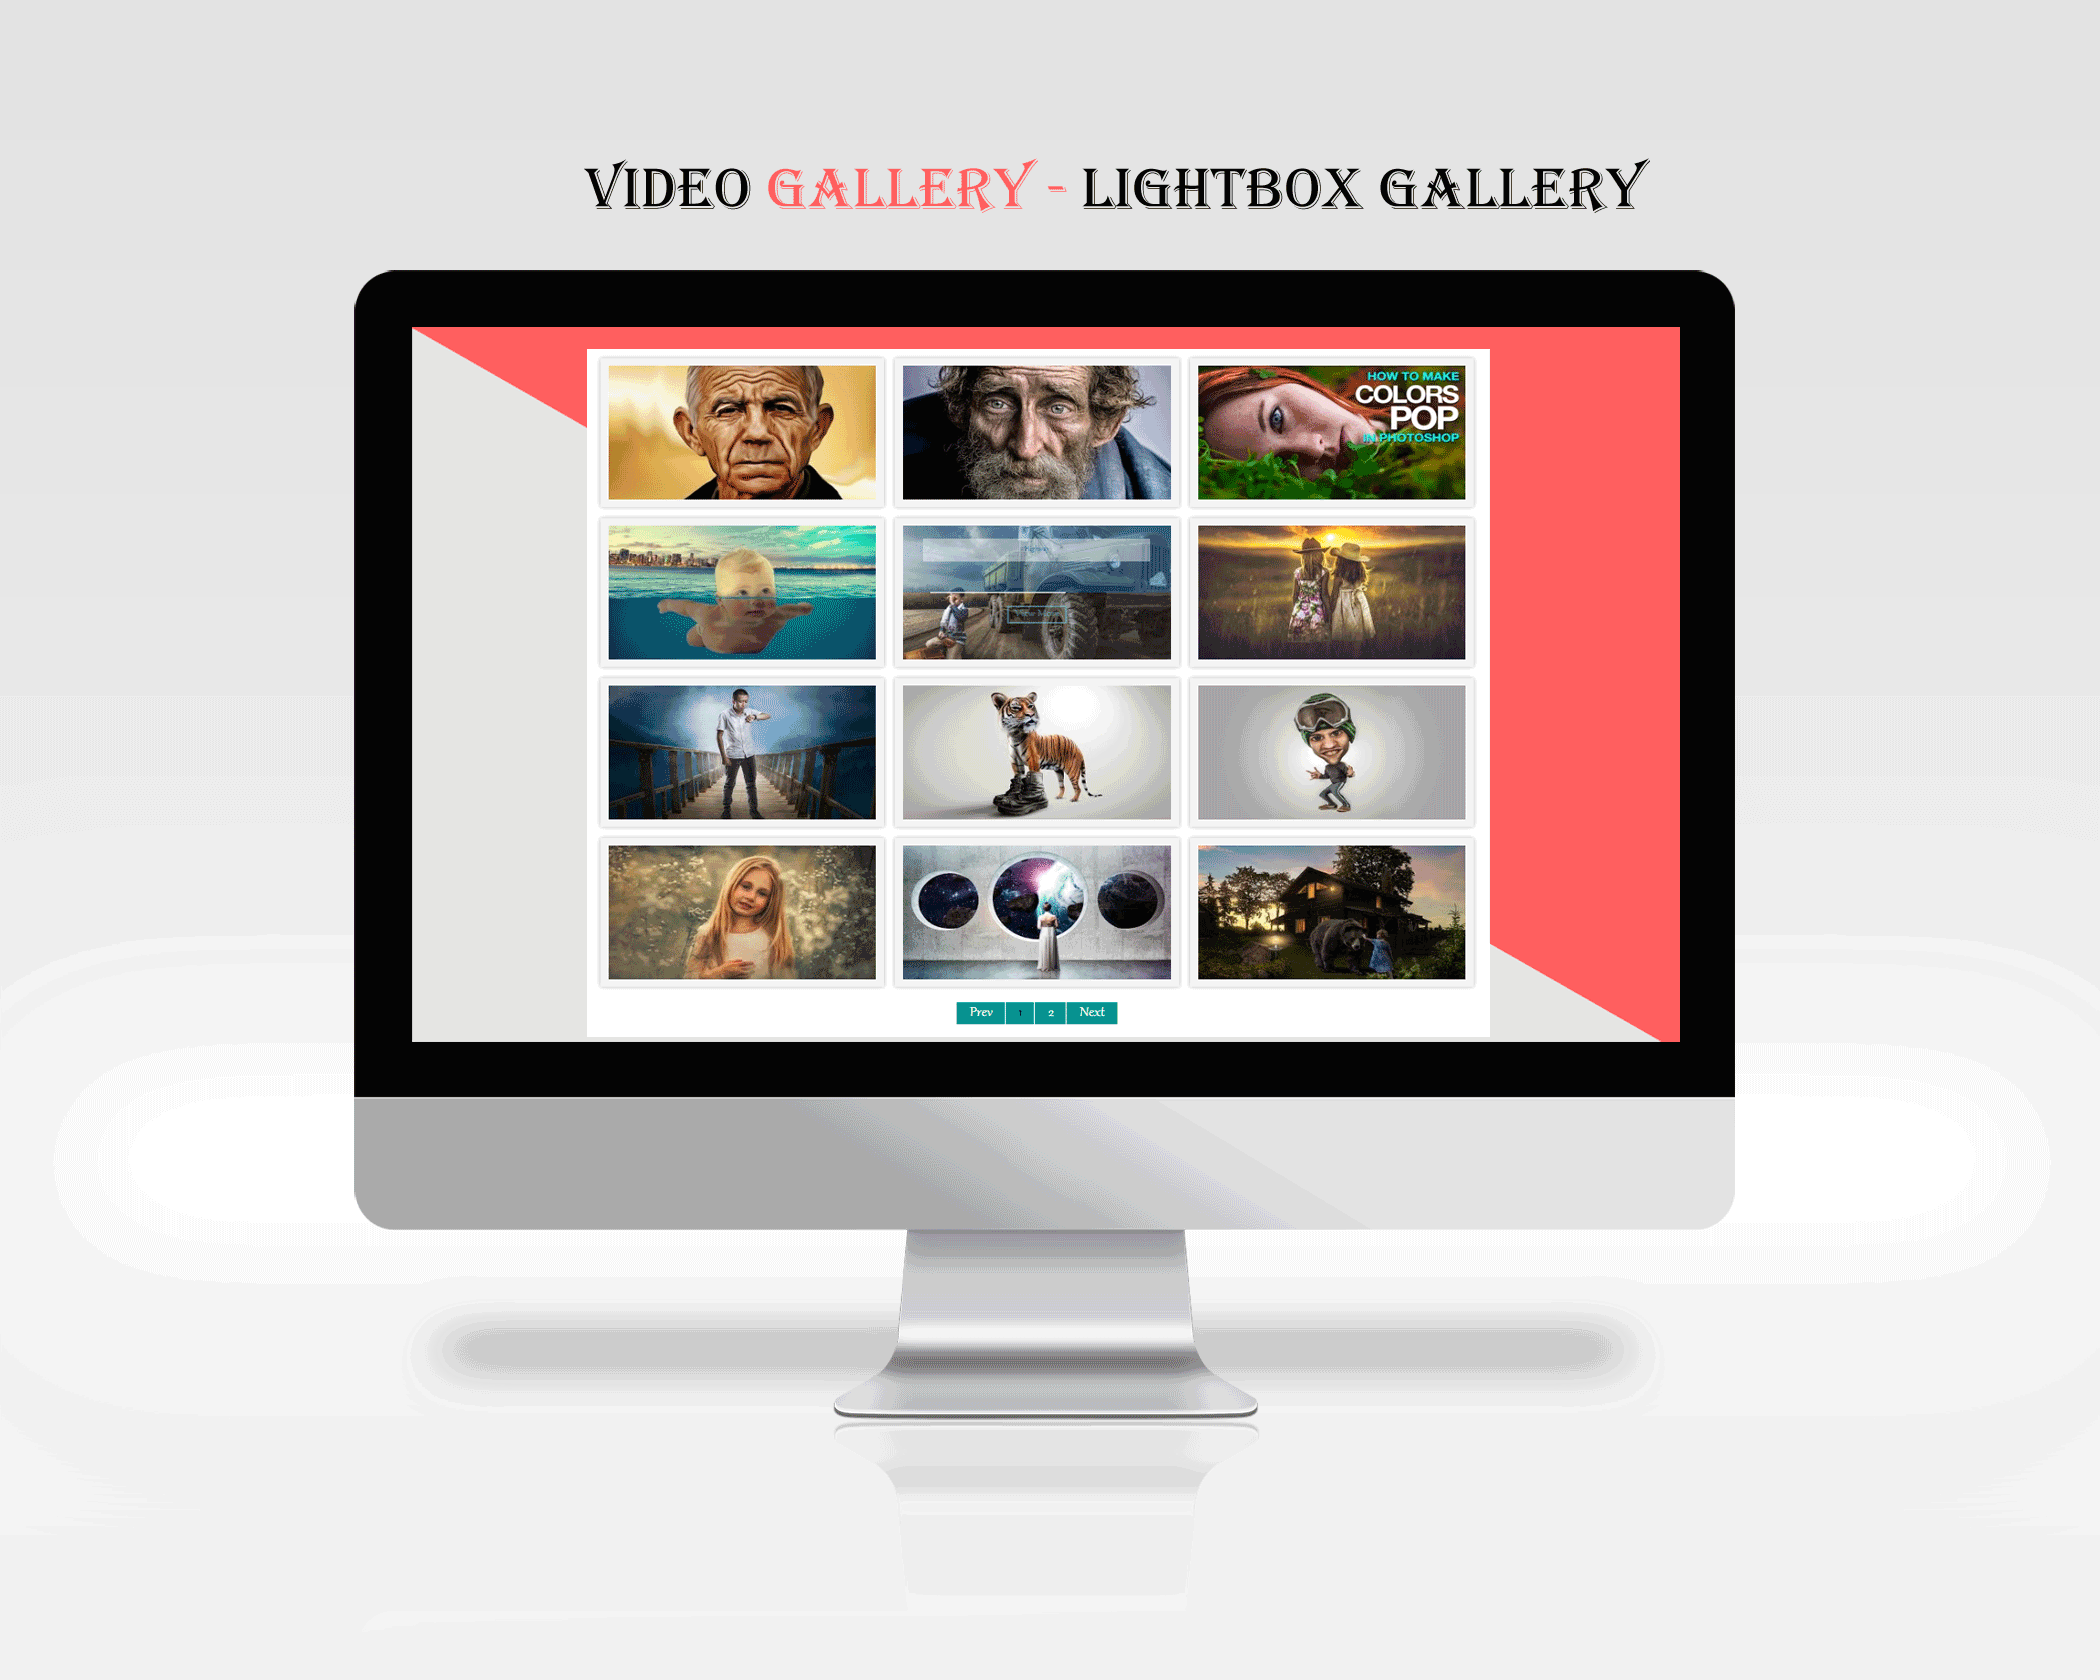 An example of plugin in action - LightBox Gallery Version)